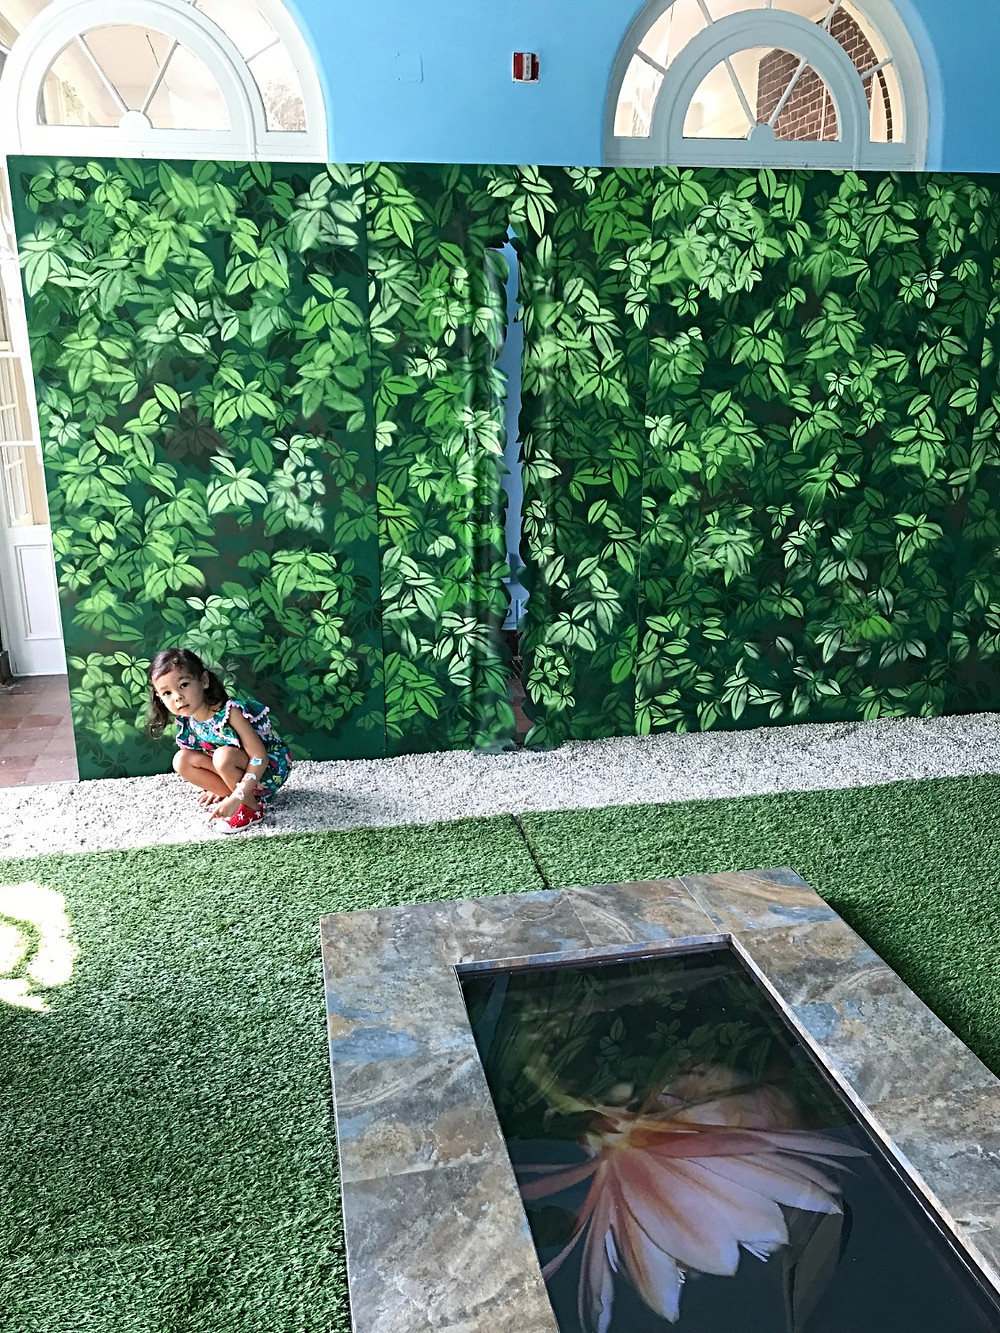 Wave Hill, NYC Botanical Garden, kids in nature, NYC hidden gem, Family Art Project, Curious G and Me, Glyndor Gallery, Sunroom Project Space, Paradise by Priyanka Dasgupta and Chad Marshall